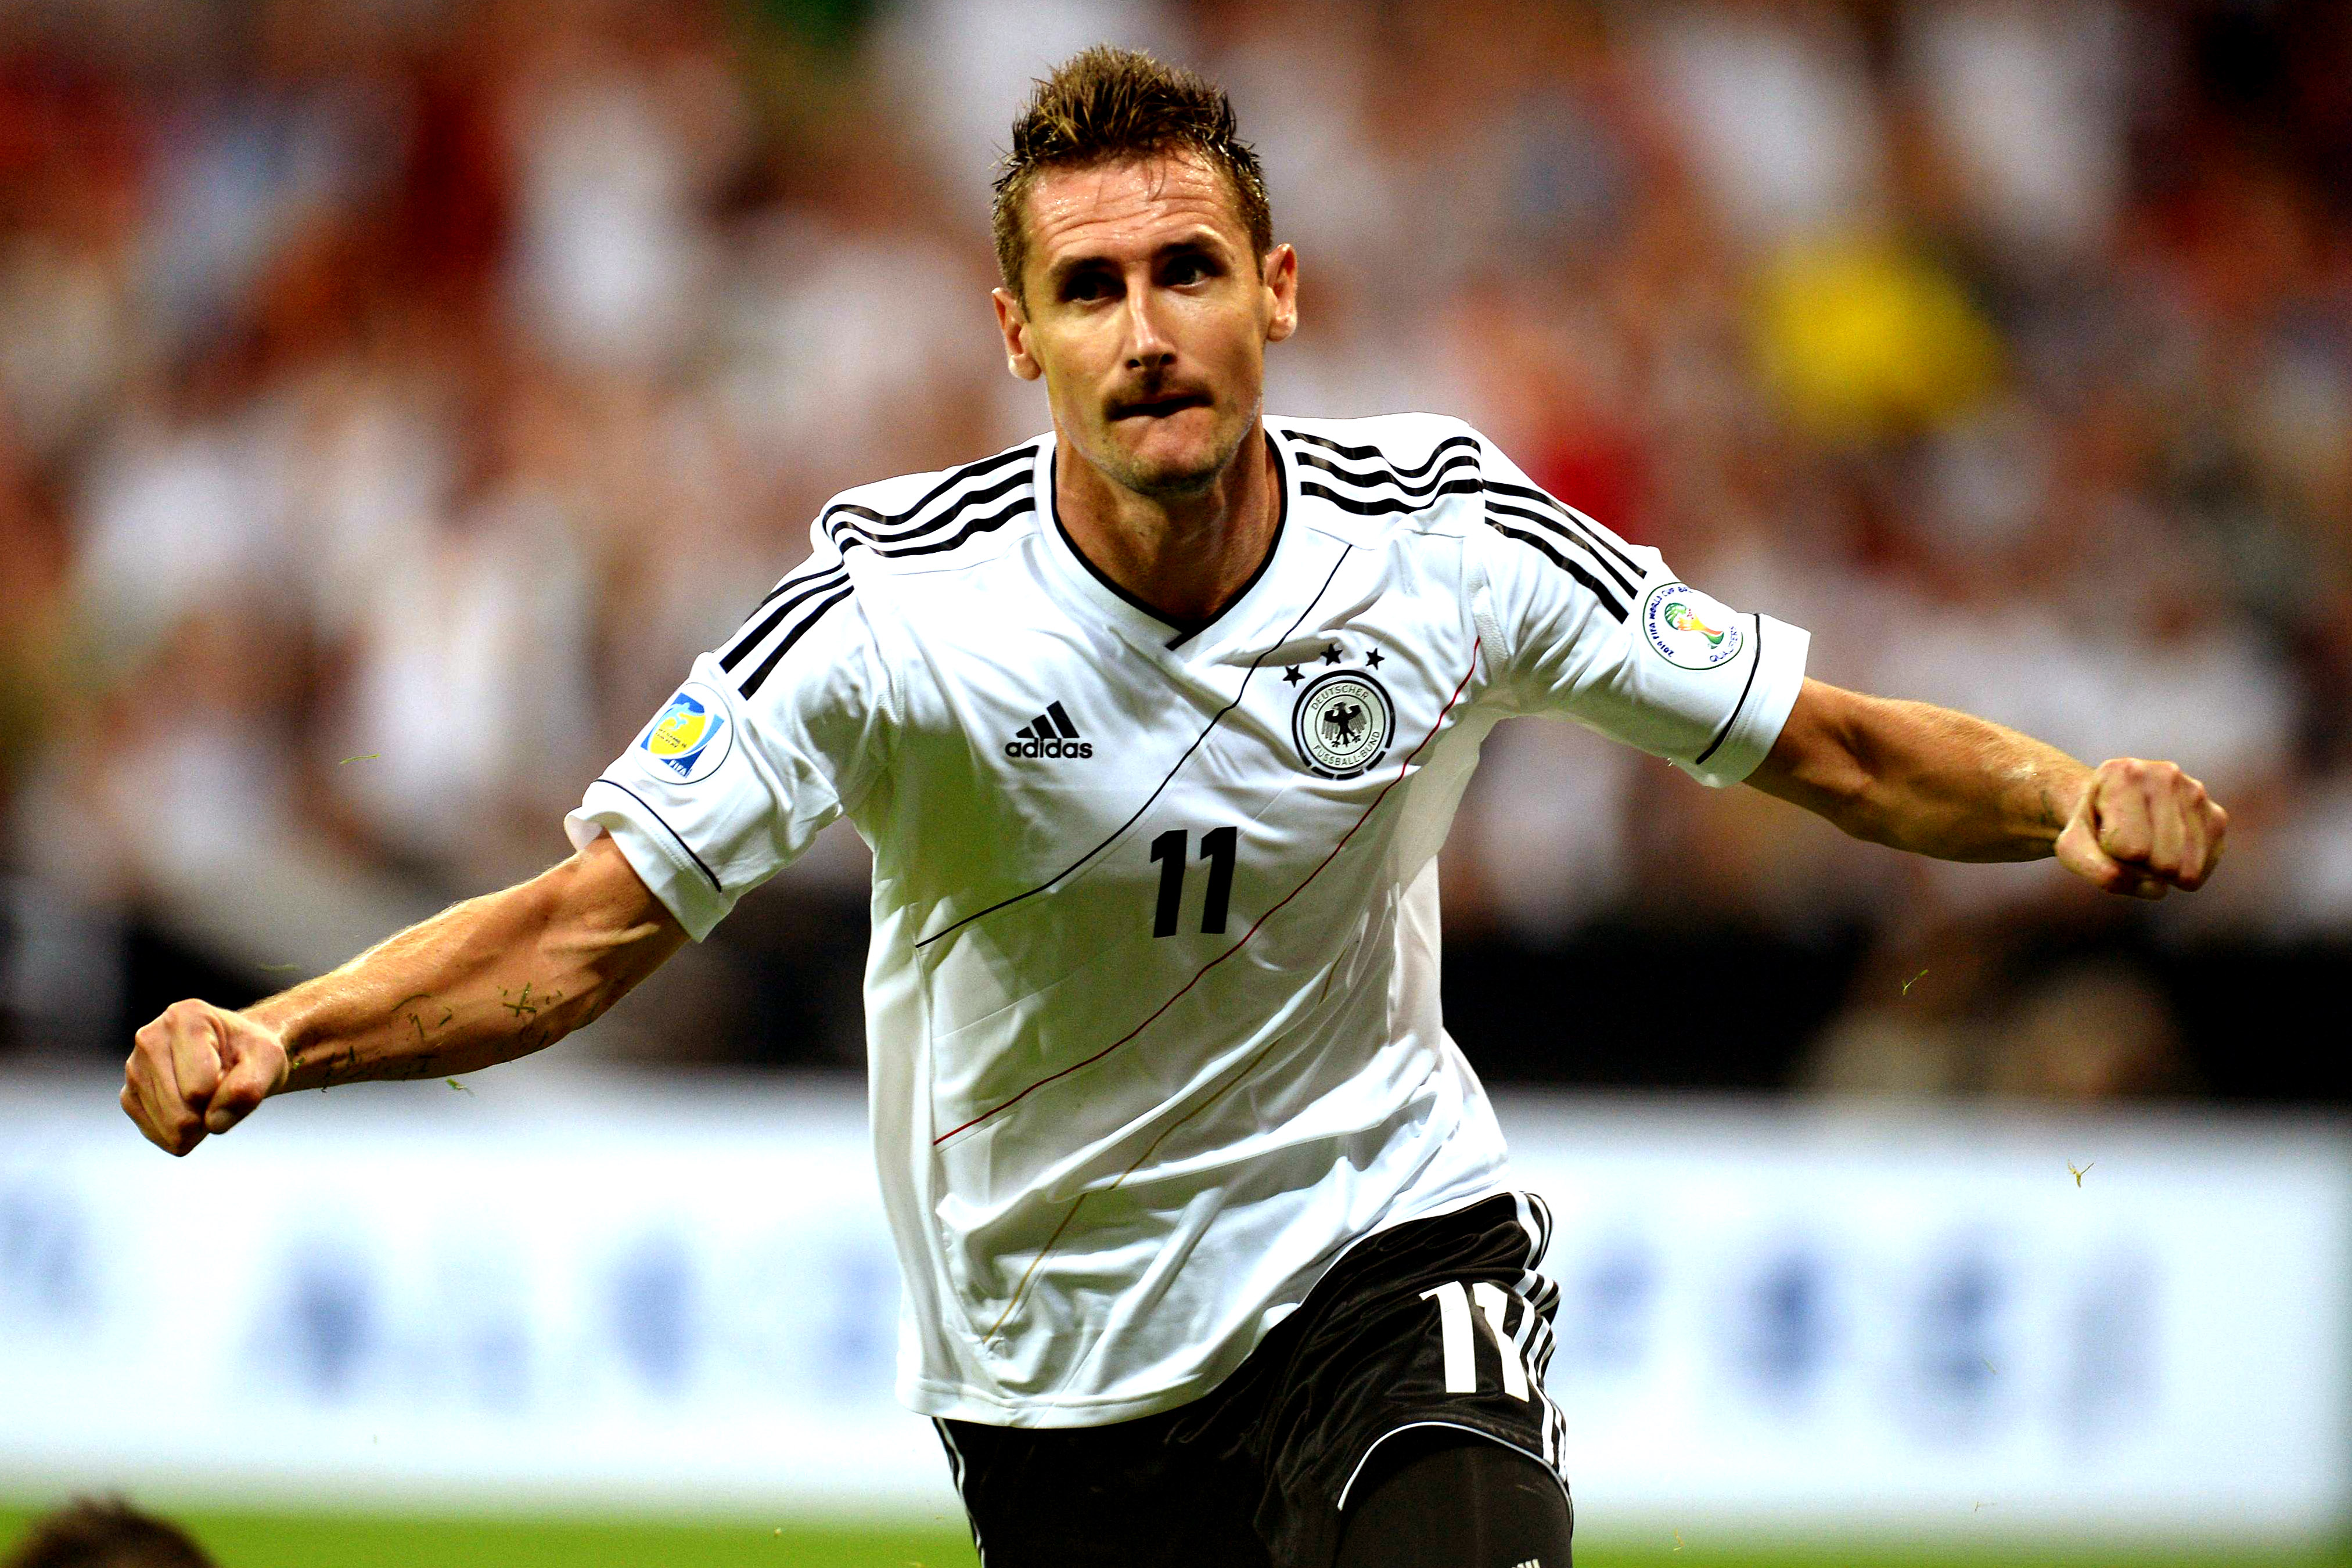 Miroslav Klose equals Ronaldo s record of 15 World Cup goals – My